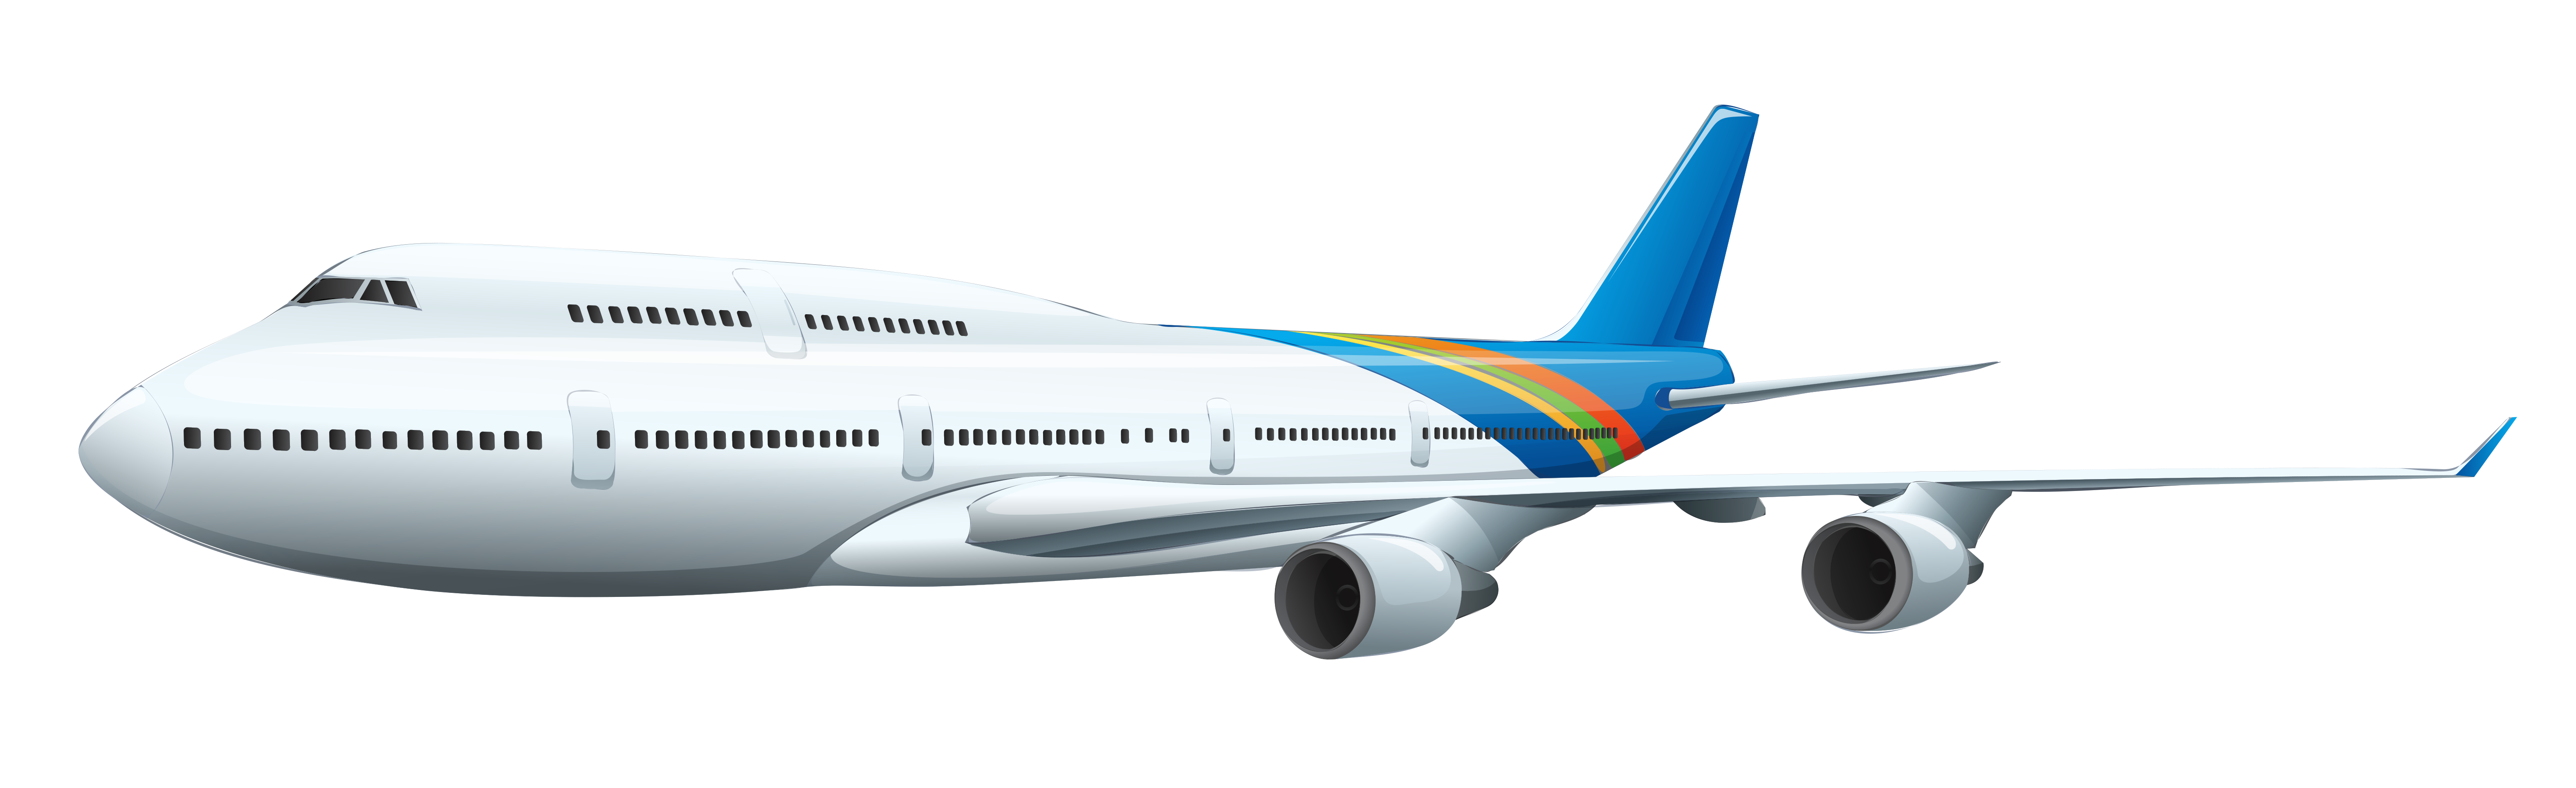 Free PNG HD Planes - 142971